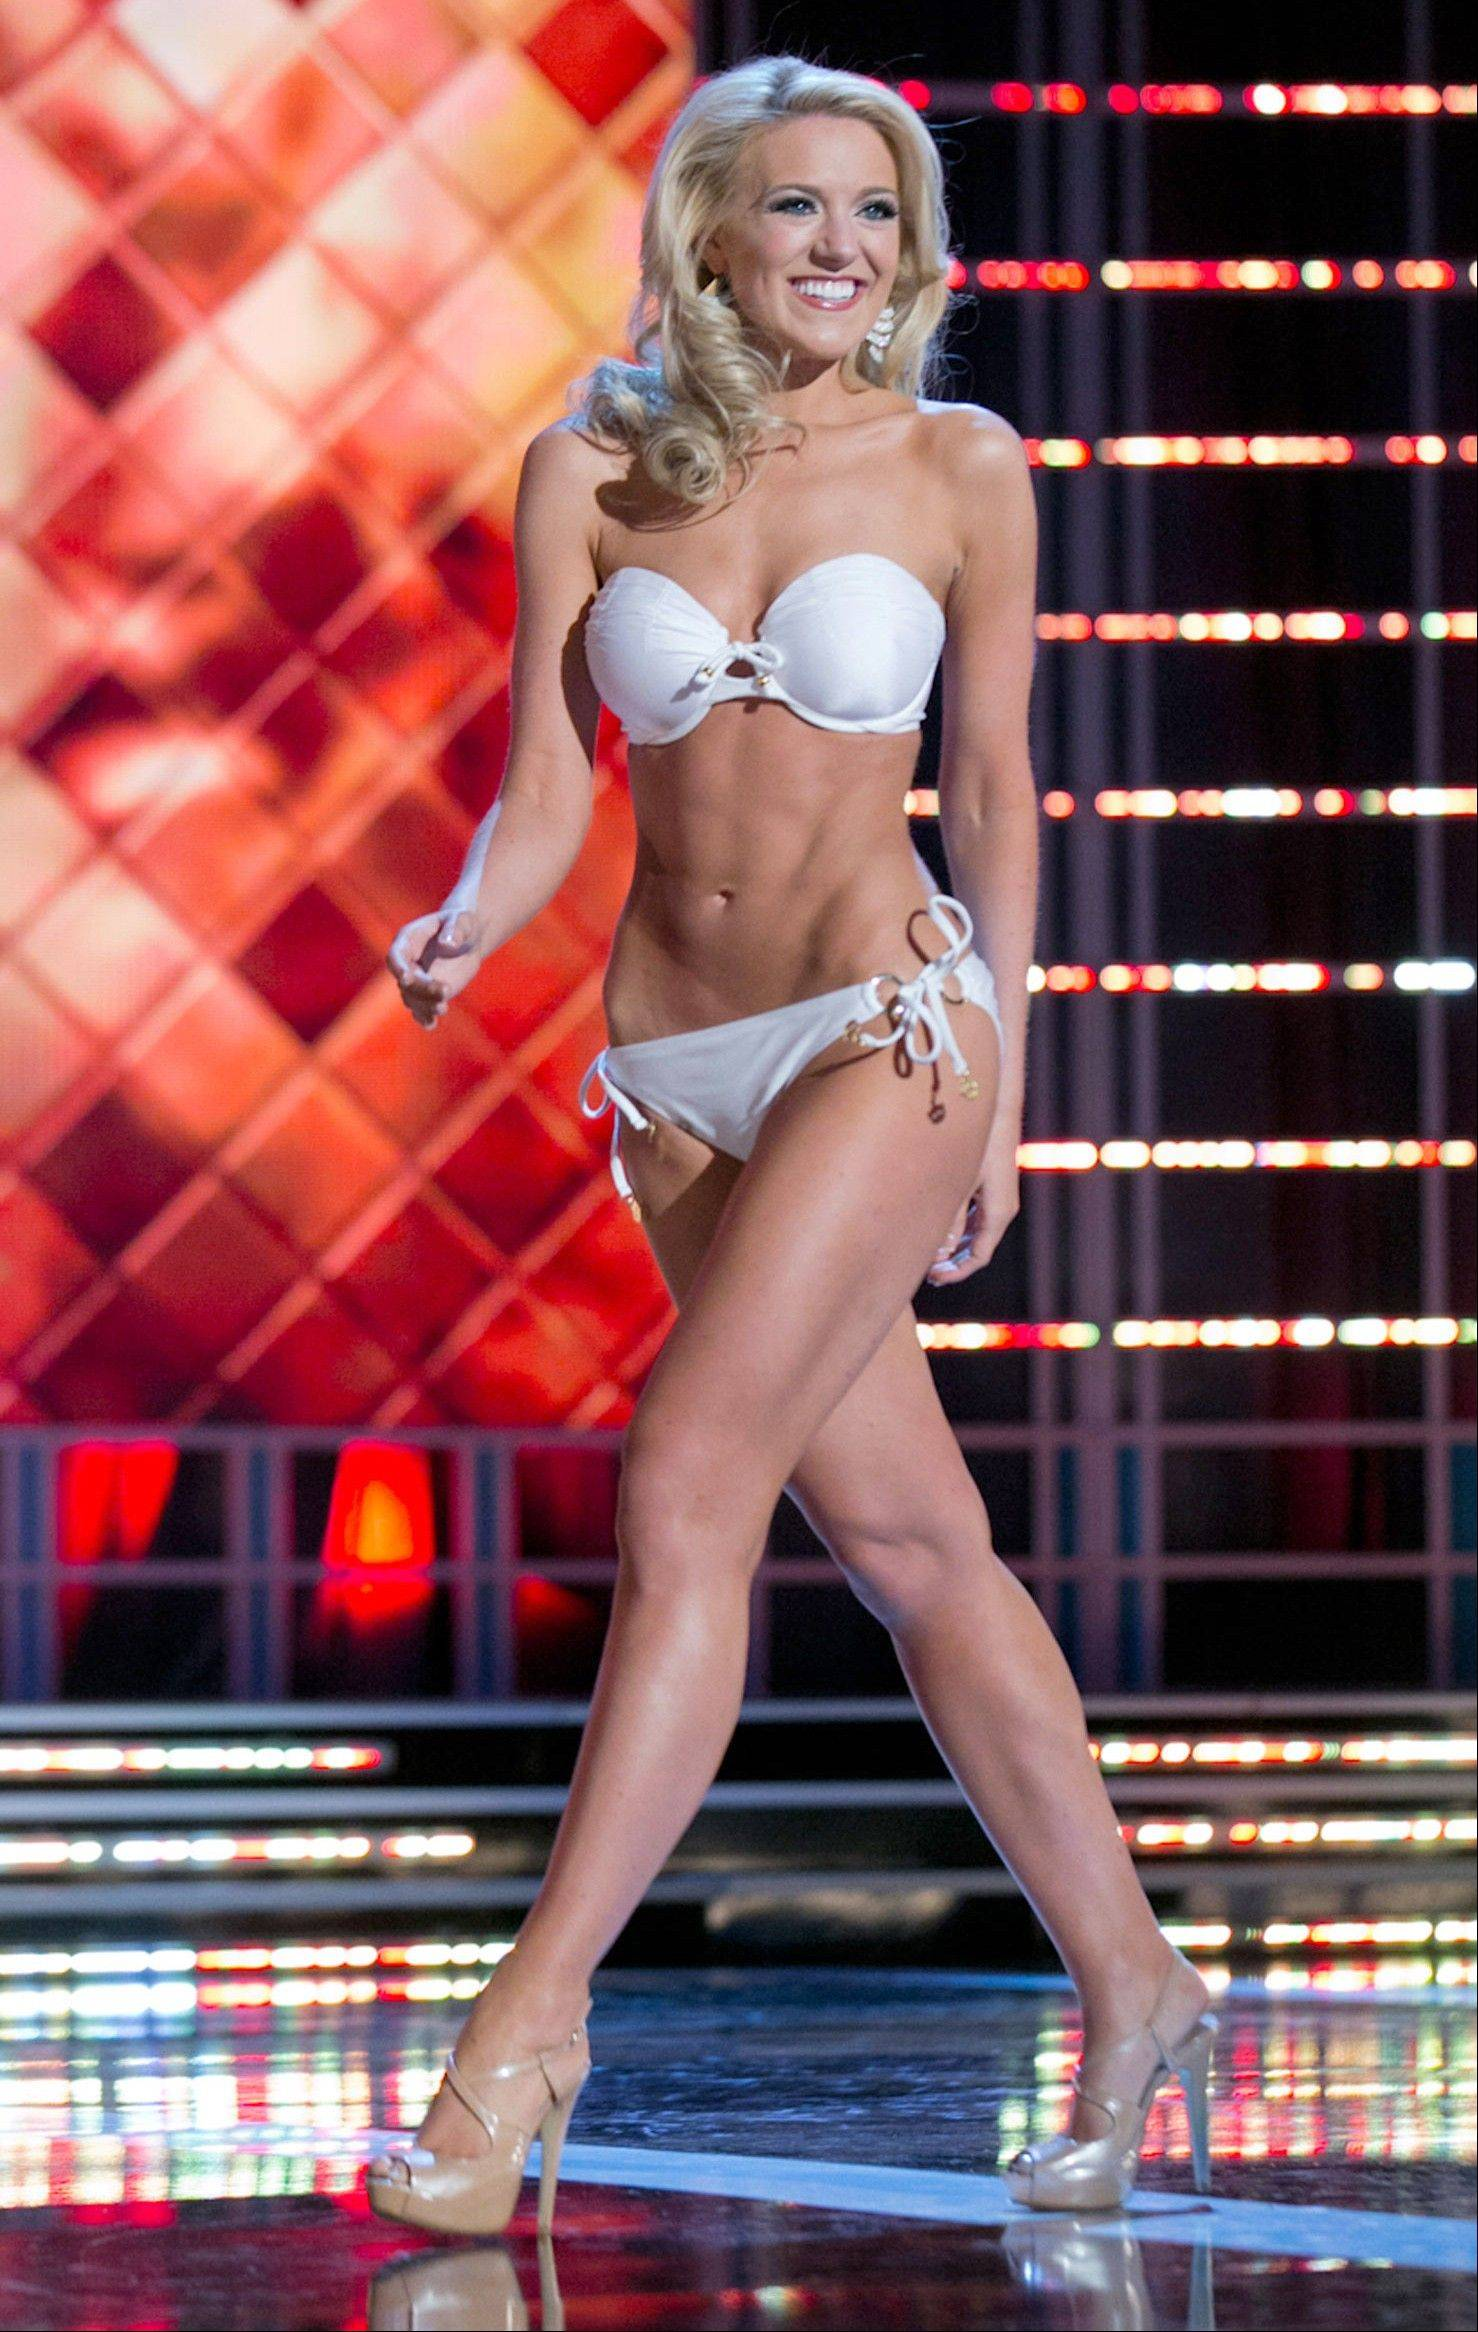 This photo courtesy Miss America Organization shows Miss Washington Mandy Schendel who took the trophy for the third round of the Lifestyle and Fitness category after modeling a strapless white Catalina swimsuit on Thursday. Jan. 10, 2013, at the Planet Hollywood casino in Las Vegas. The 22-year-old from Newcastle, Wash., earned a $1,000 Amway scholarship for it.